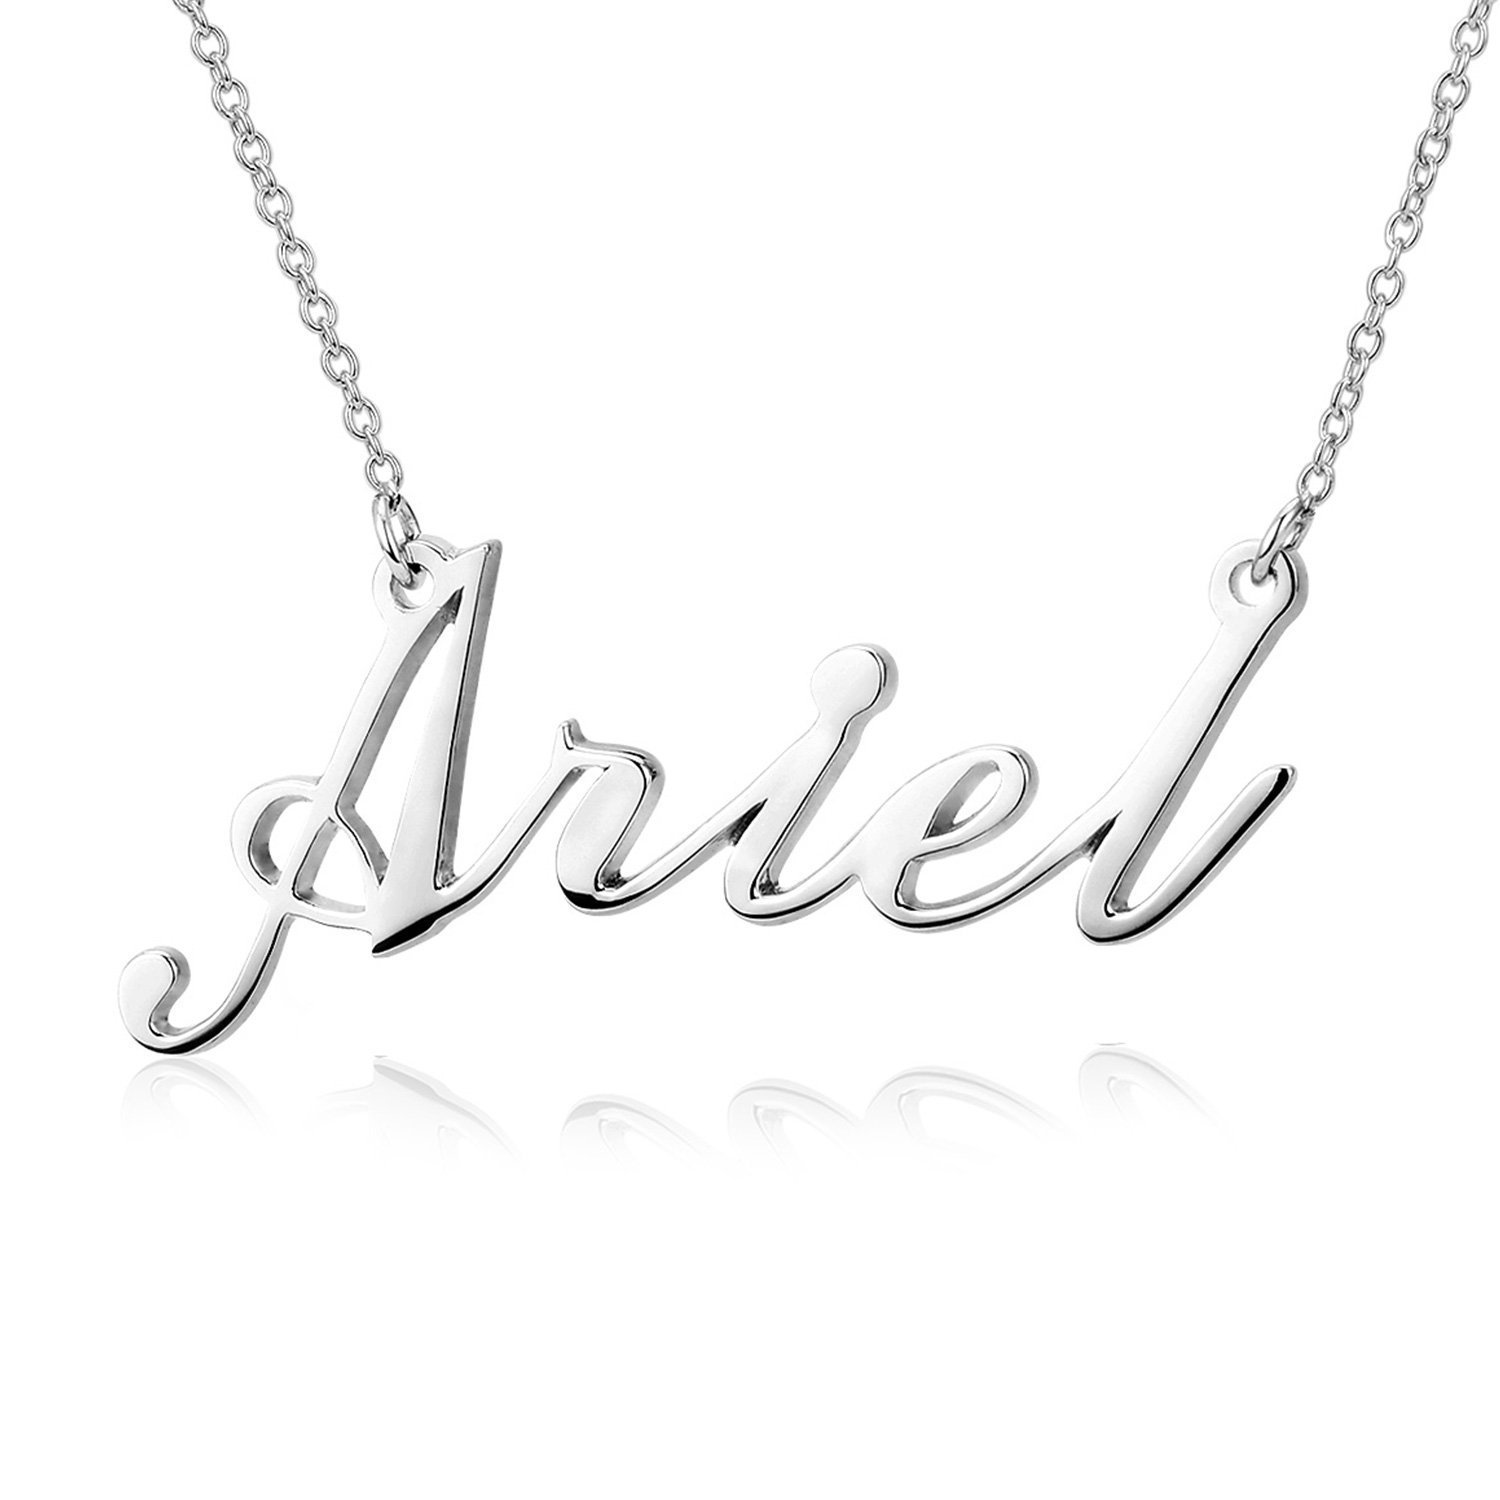 LONAGO Custom Name Necklace Carrie Style Personalized Nameplate 925 Sterling Silver Necklace